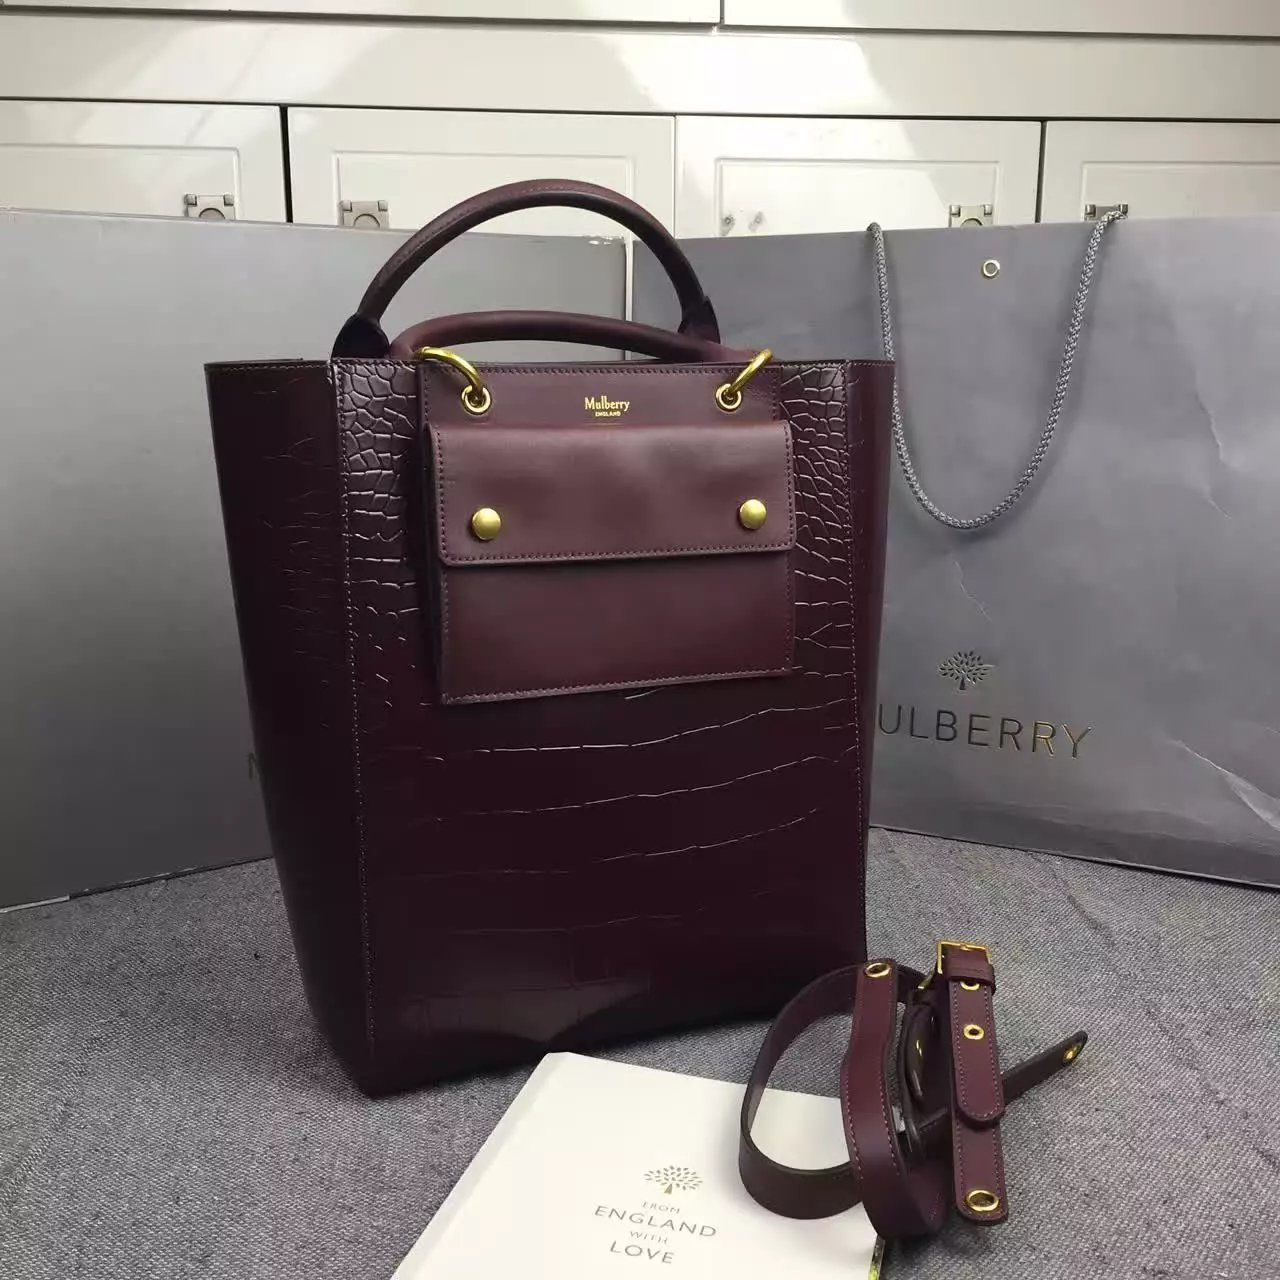 New Edition!2016 Mulberry Handbags Collection Outlet UK-Mulberry Maple  Oxblood Polished Embossed Croc 3f8815adeaa0a